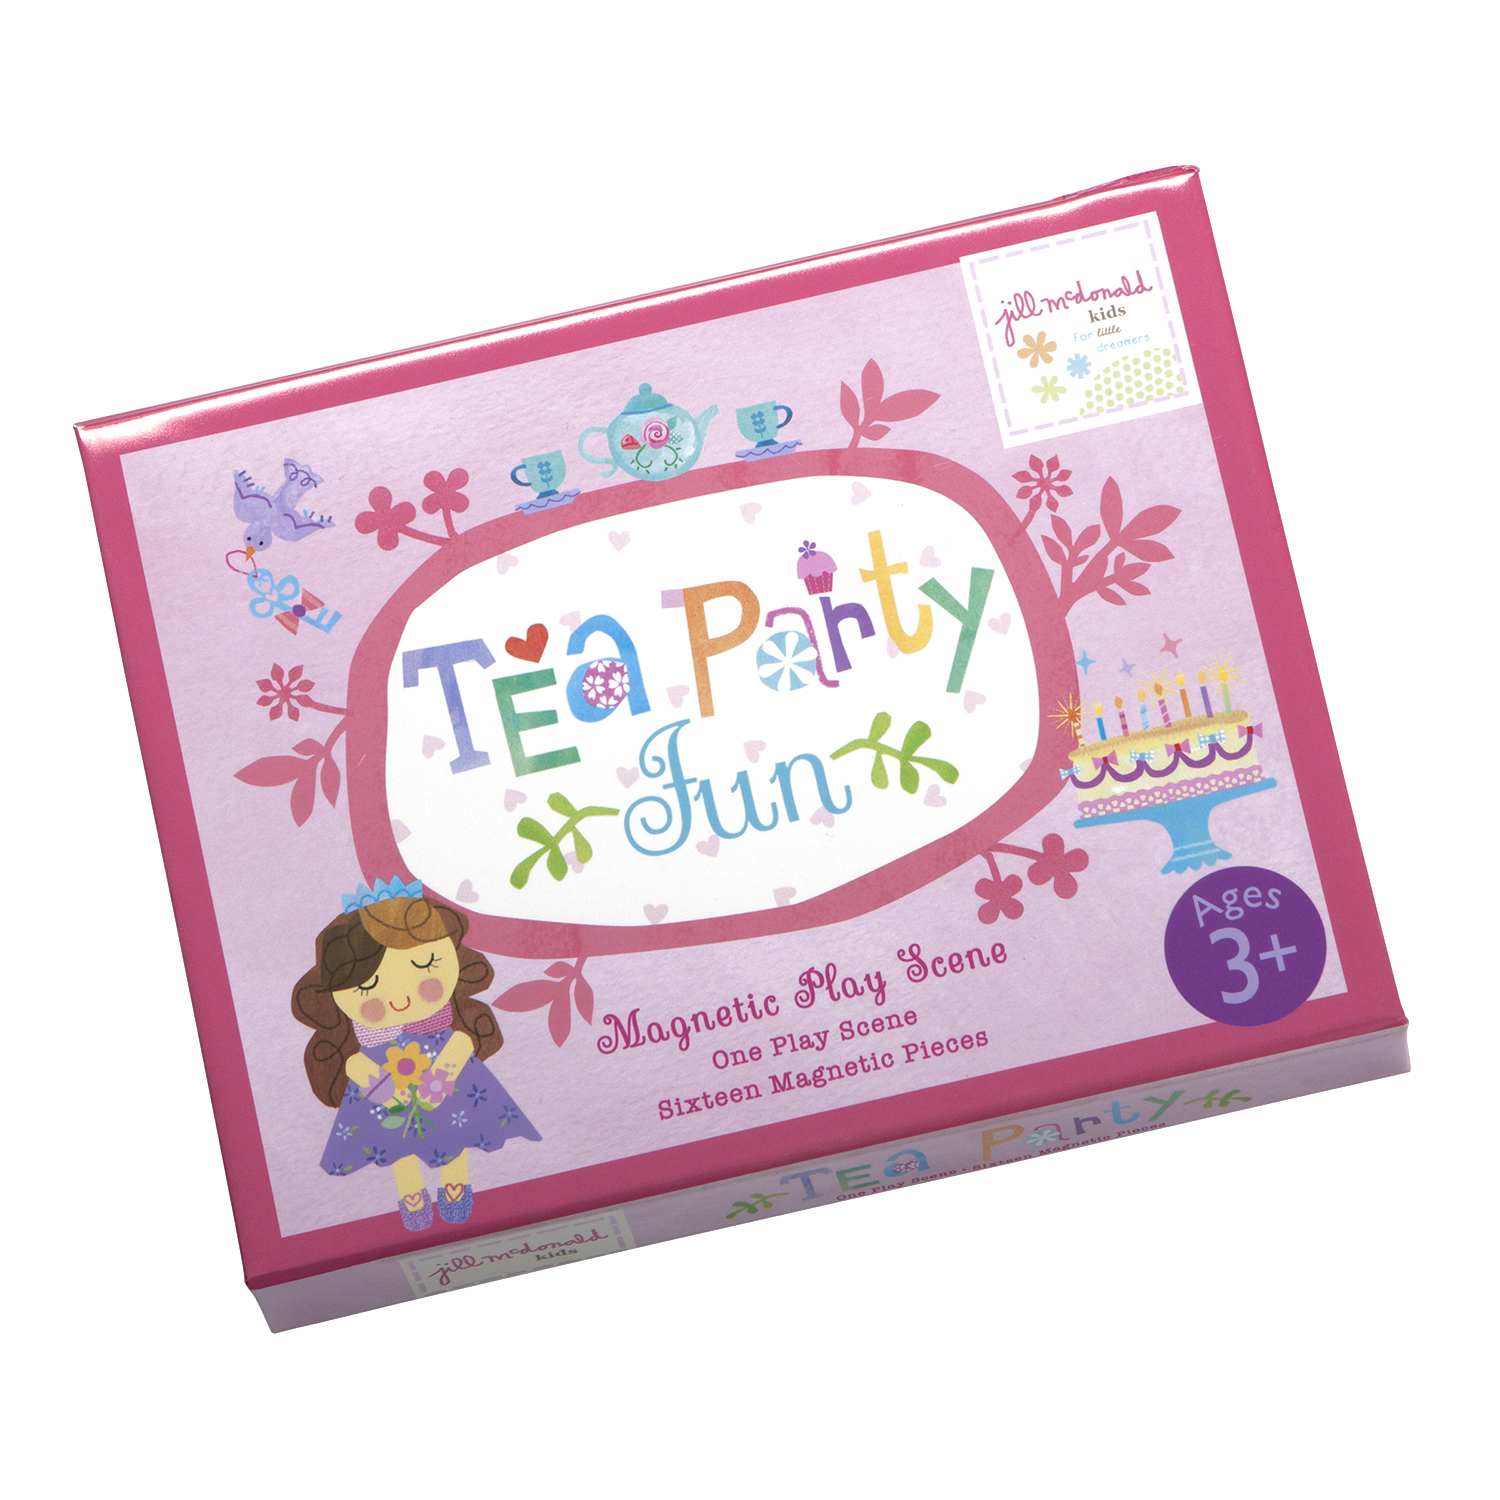 EU BMPS 14428 TEA PARTY MAGNETIC PLAY SCENE